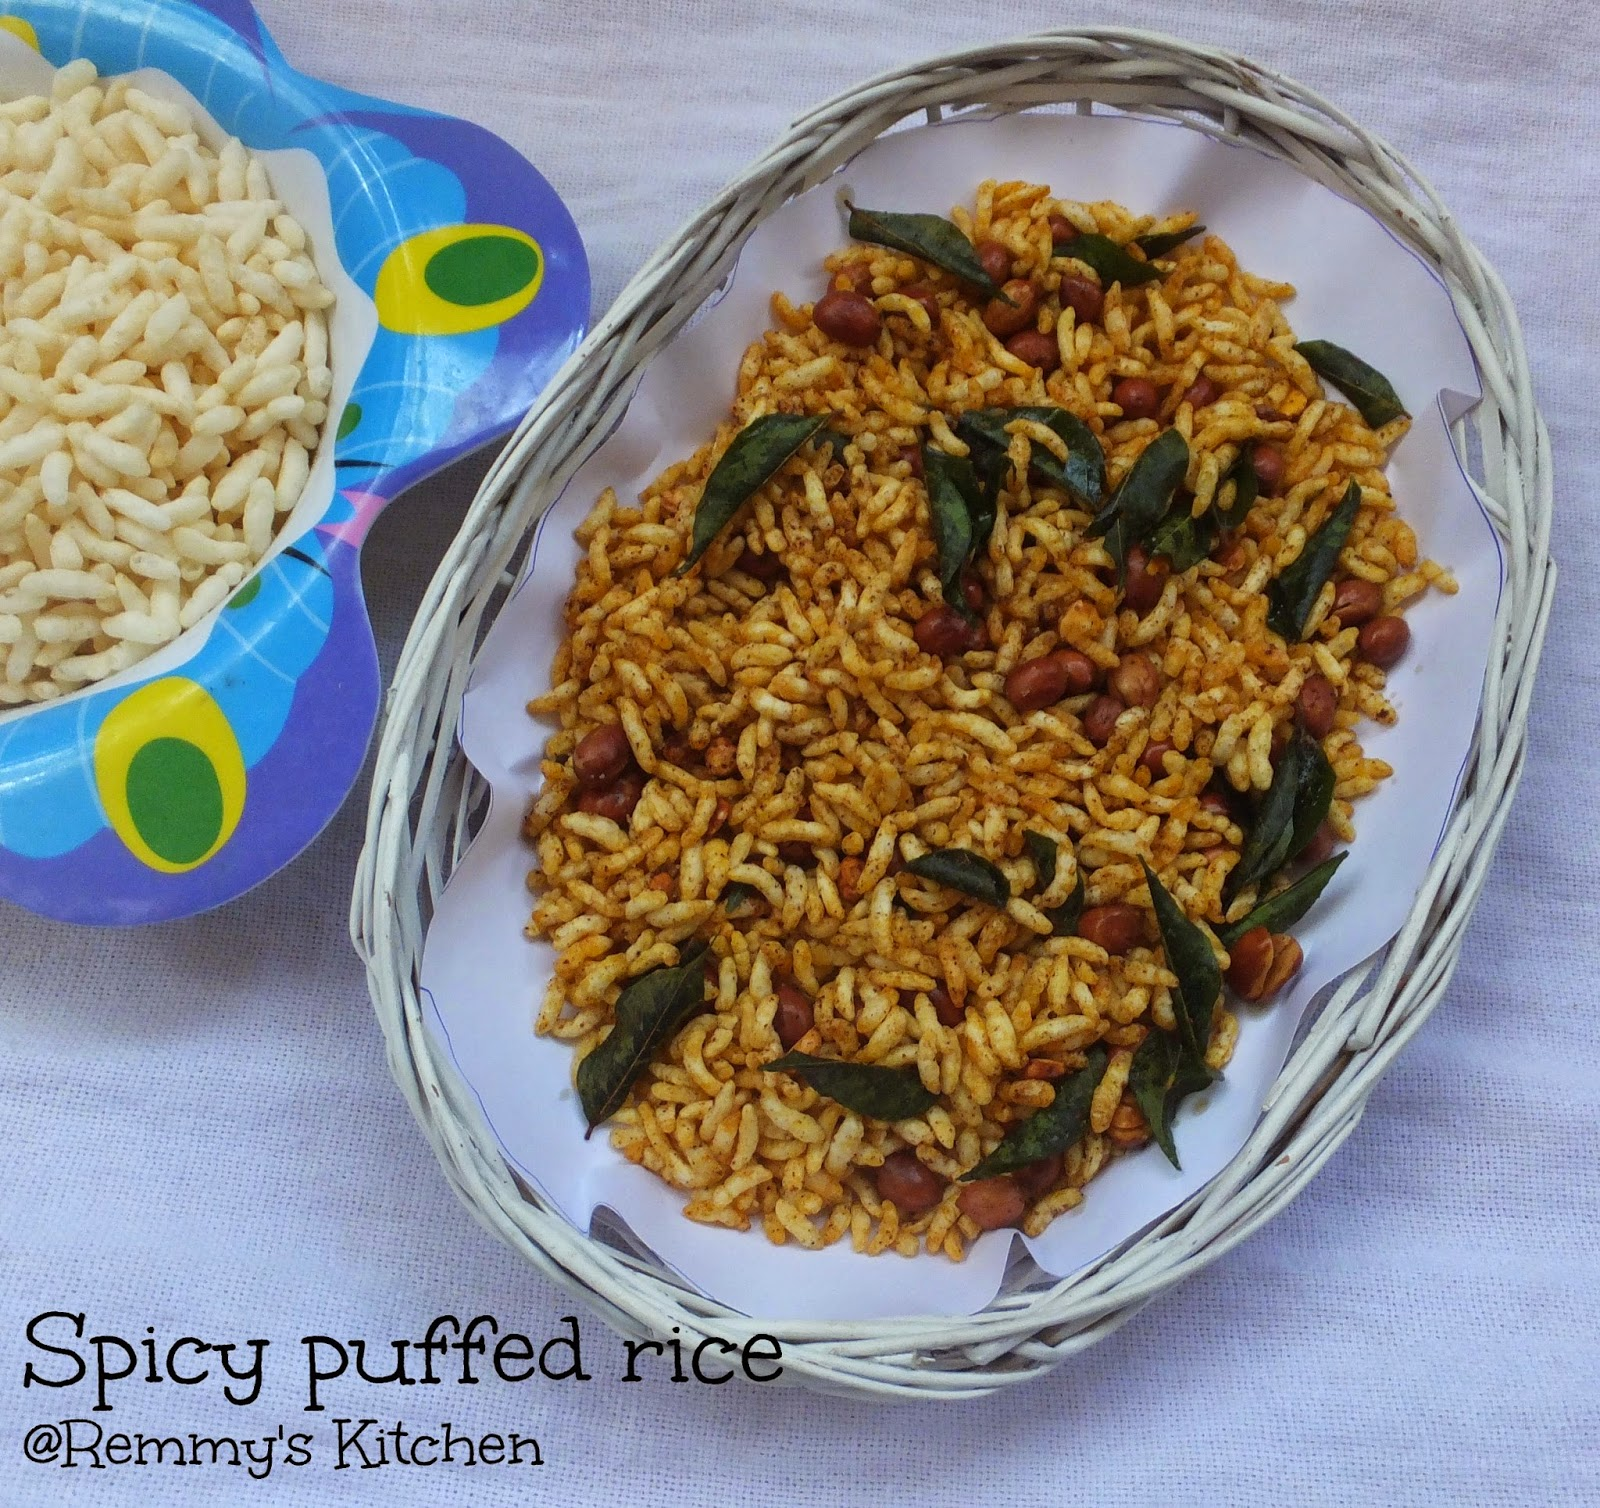 Kara pri / Spicy puffed rice / Spicy murmura